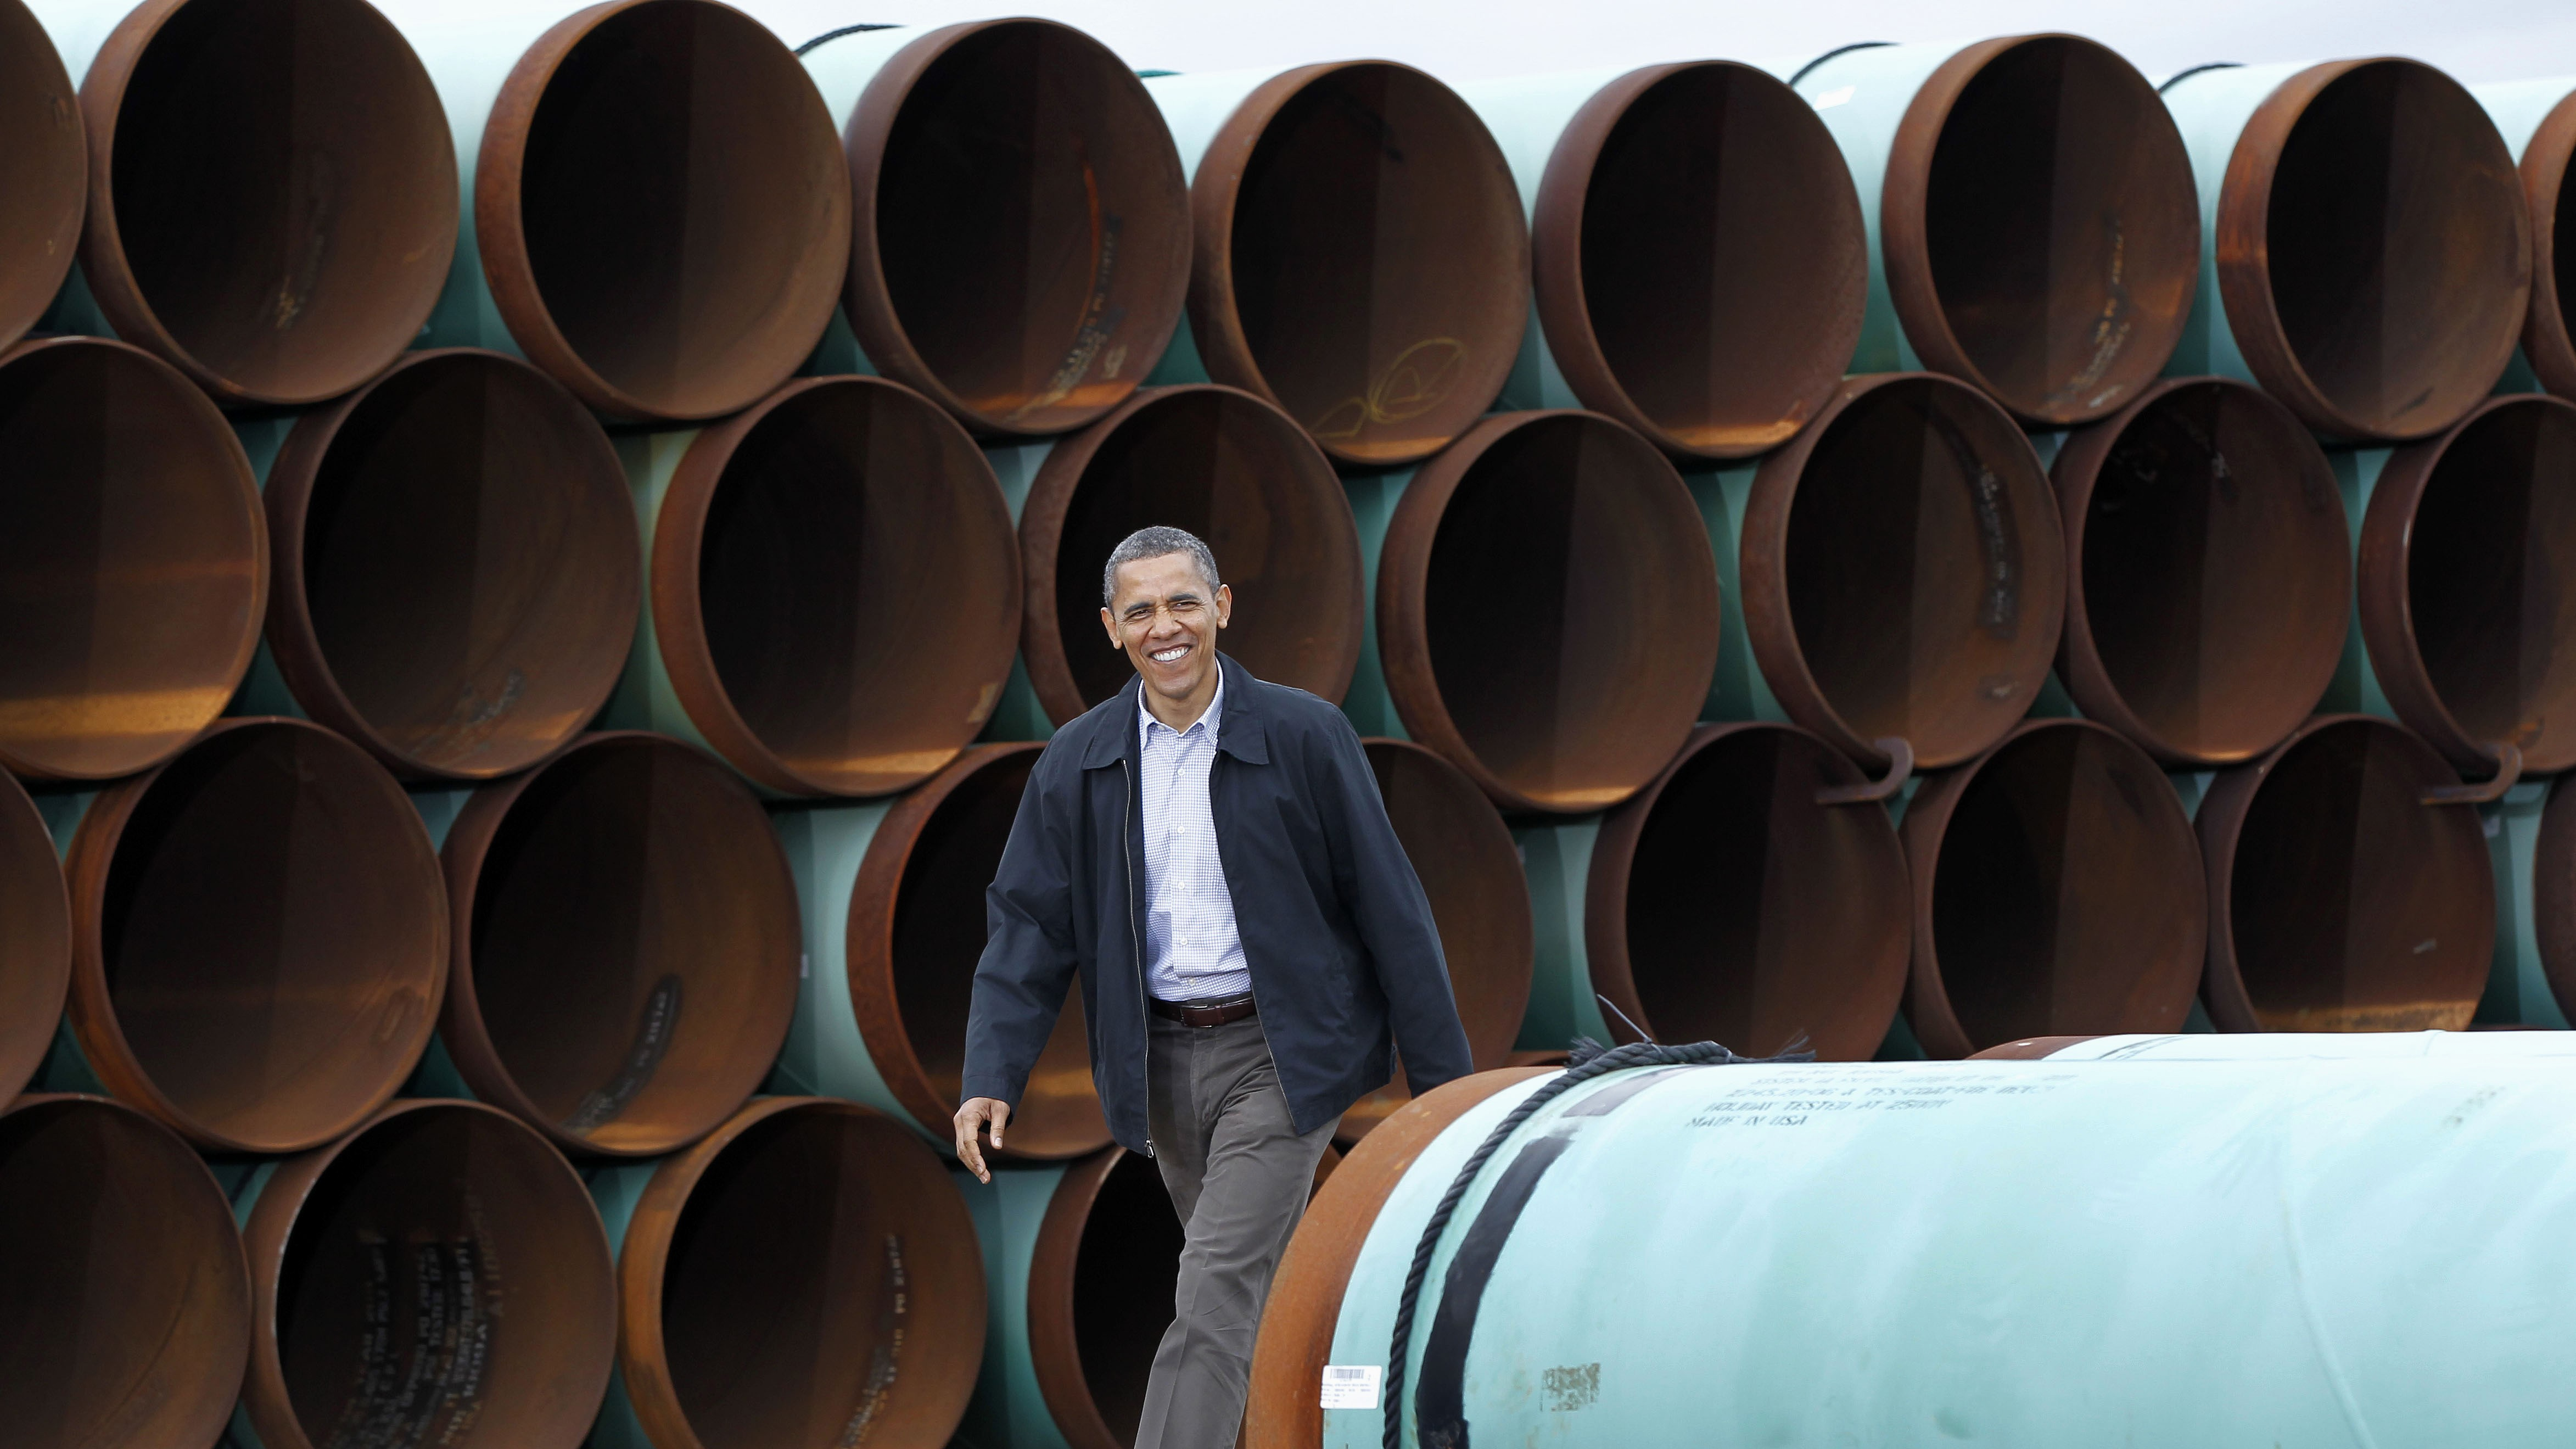 Breaking: President Obama Rejects Keystone XL Pipeline